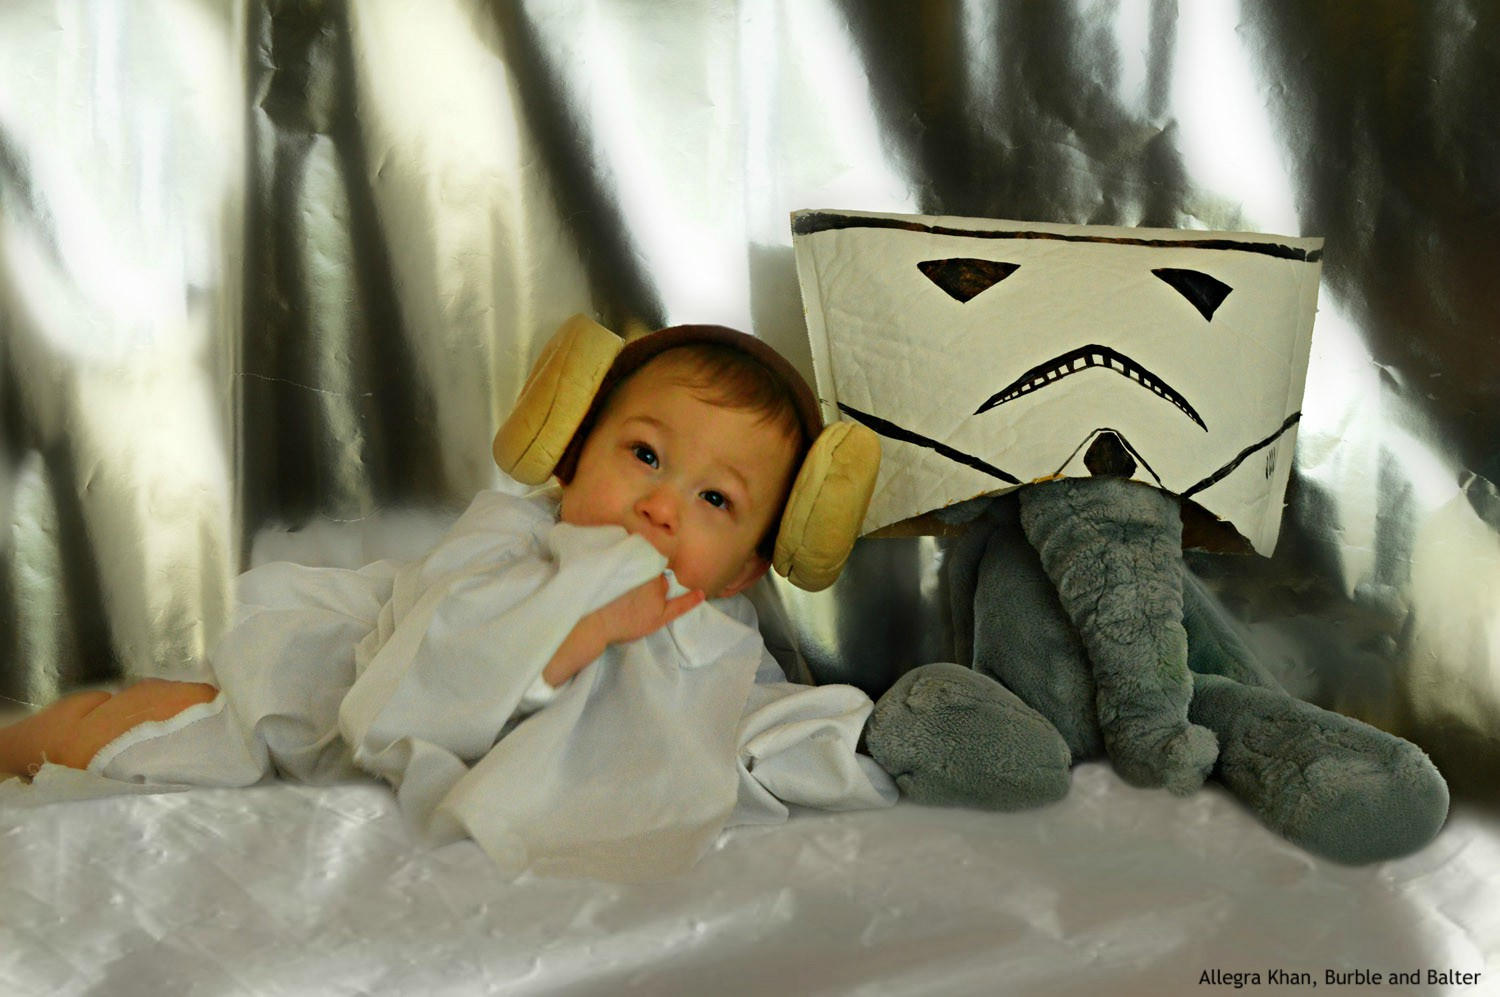 Princess-Leia-3-Star-Wars-Costume-Baby-Photoshoot-Burble-and-Balter.jpg